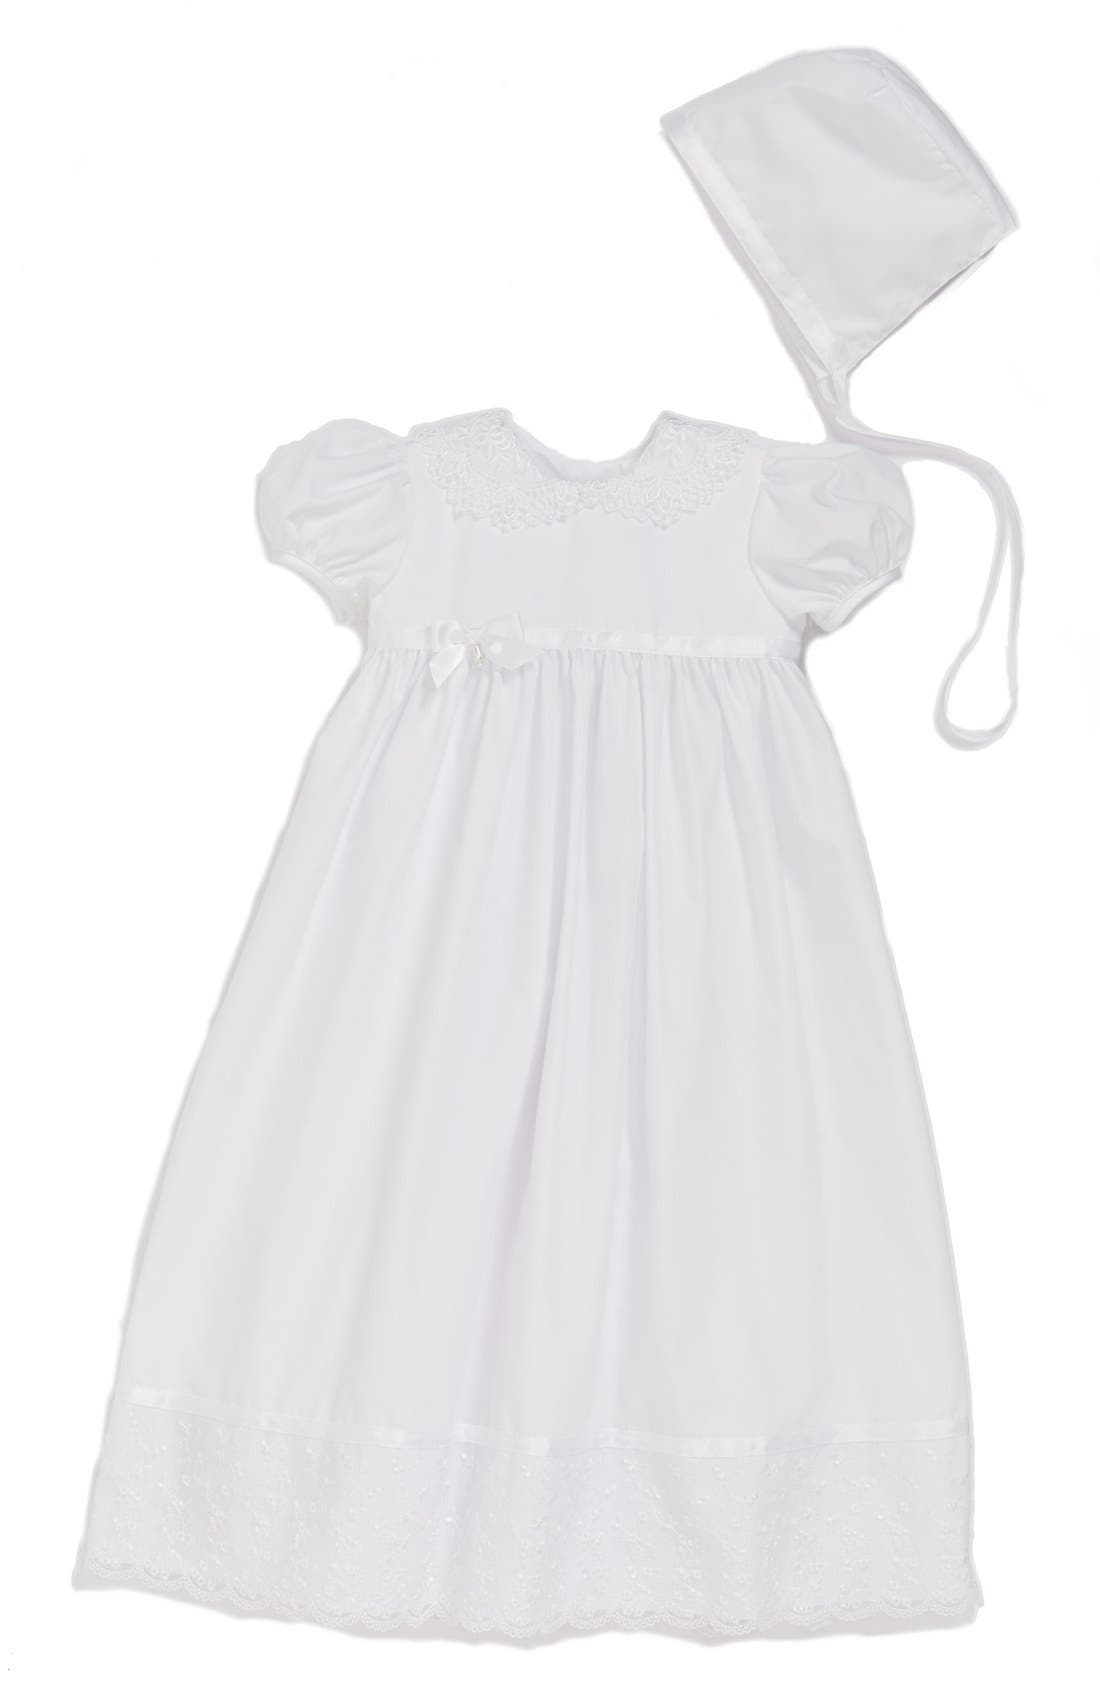 Lace Collar Christening Gown and Bonnet Set,                             Main thumbnail 1, color,                             WHITE